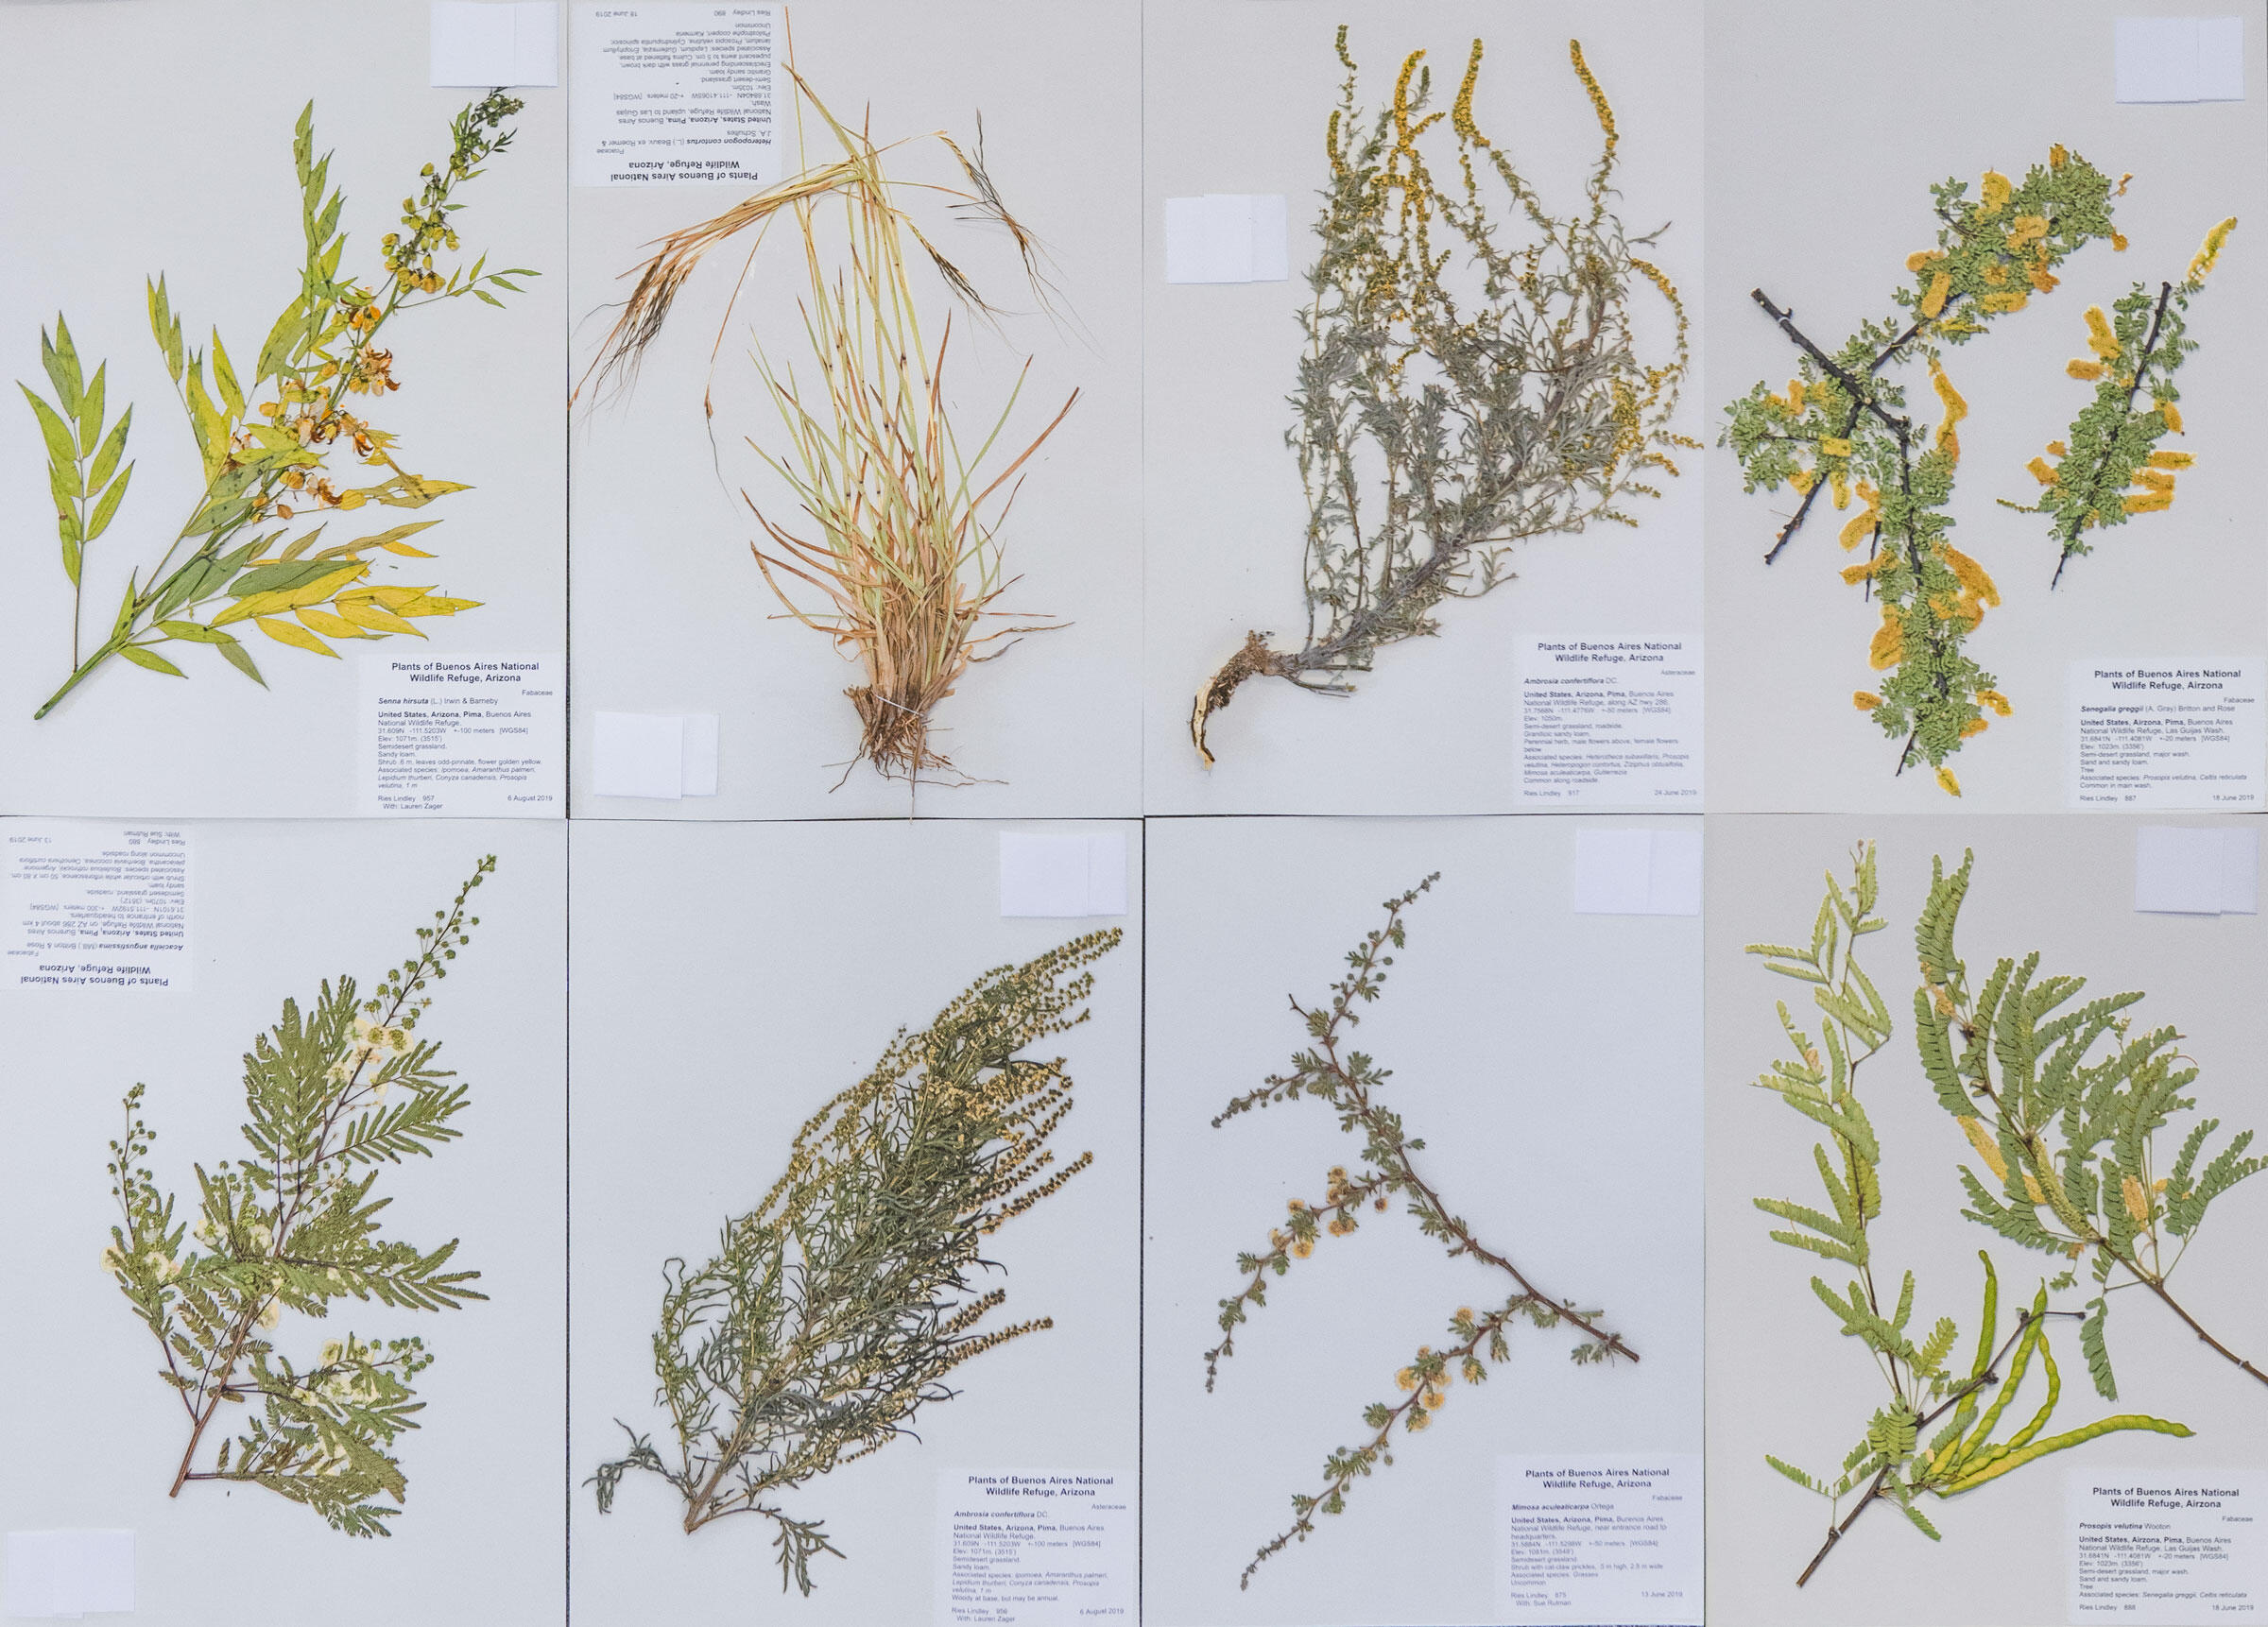 A diverse grassland is essential for Masked Bobwhite recovery. These pressings represent just a handful of the variety of plants important to the bird's survival. Morgan Heim